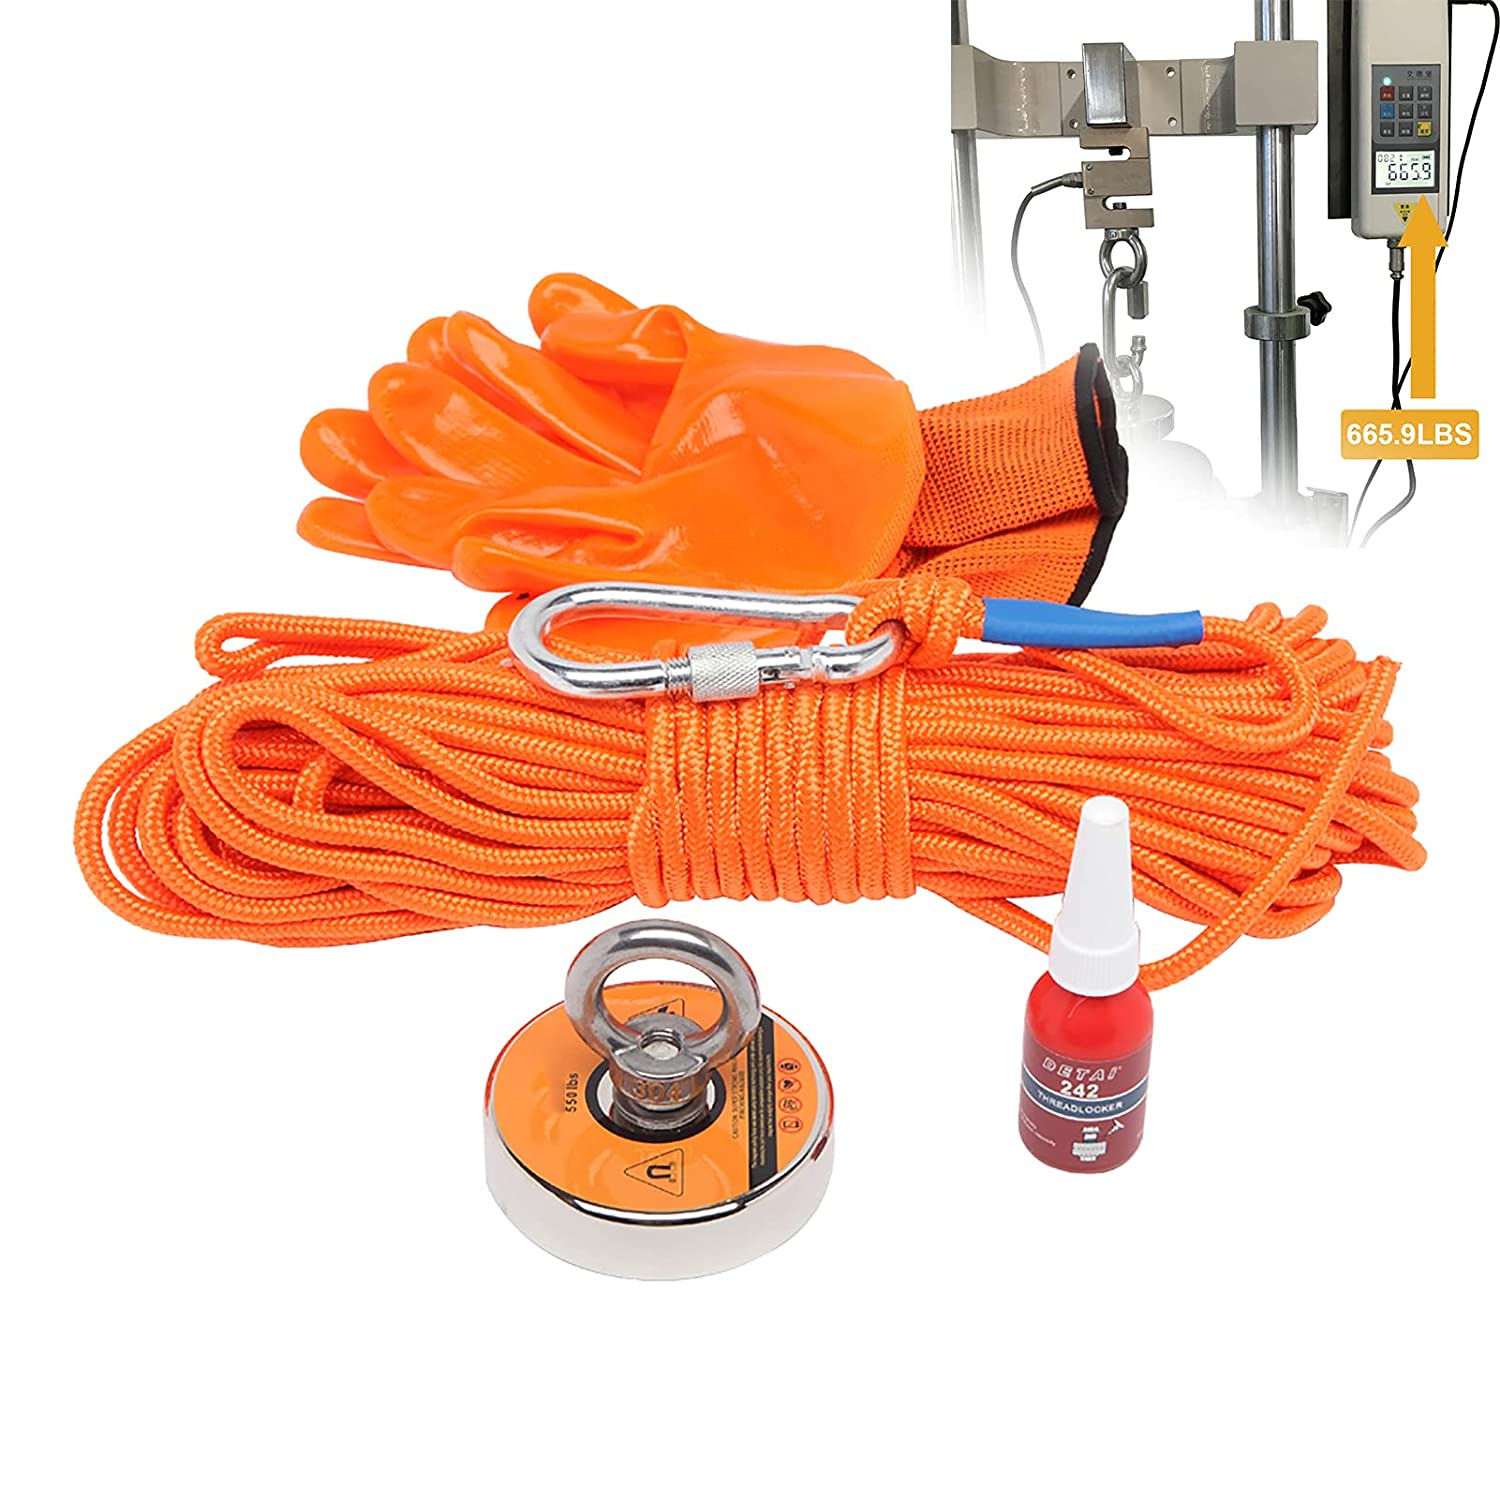 Magnetic Fishing Kit, 550 LBS Strong Salvage Magnet with Rope fo